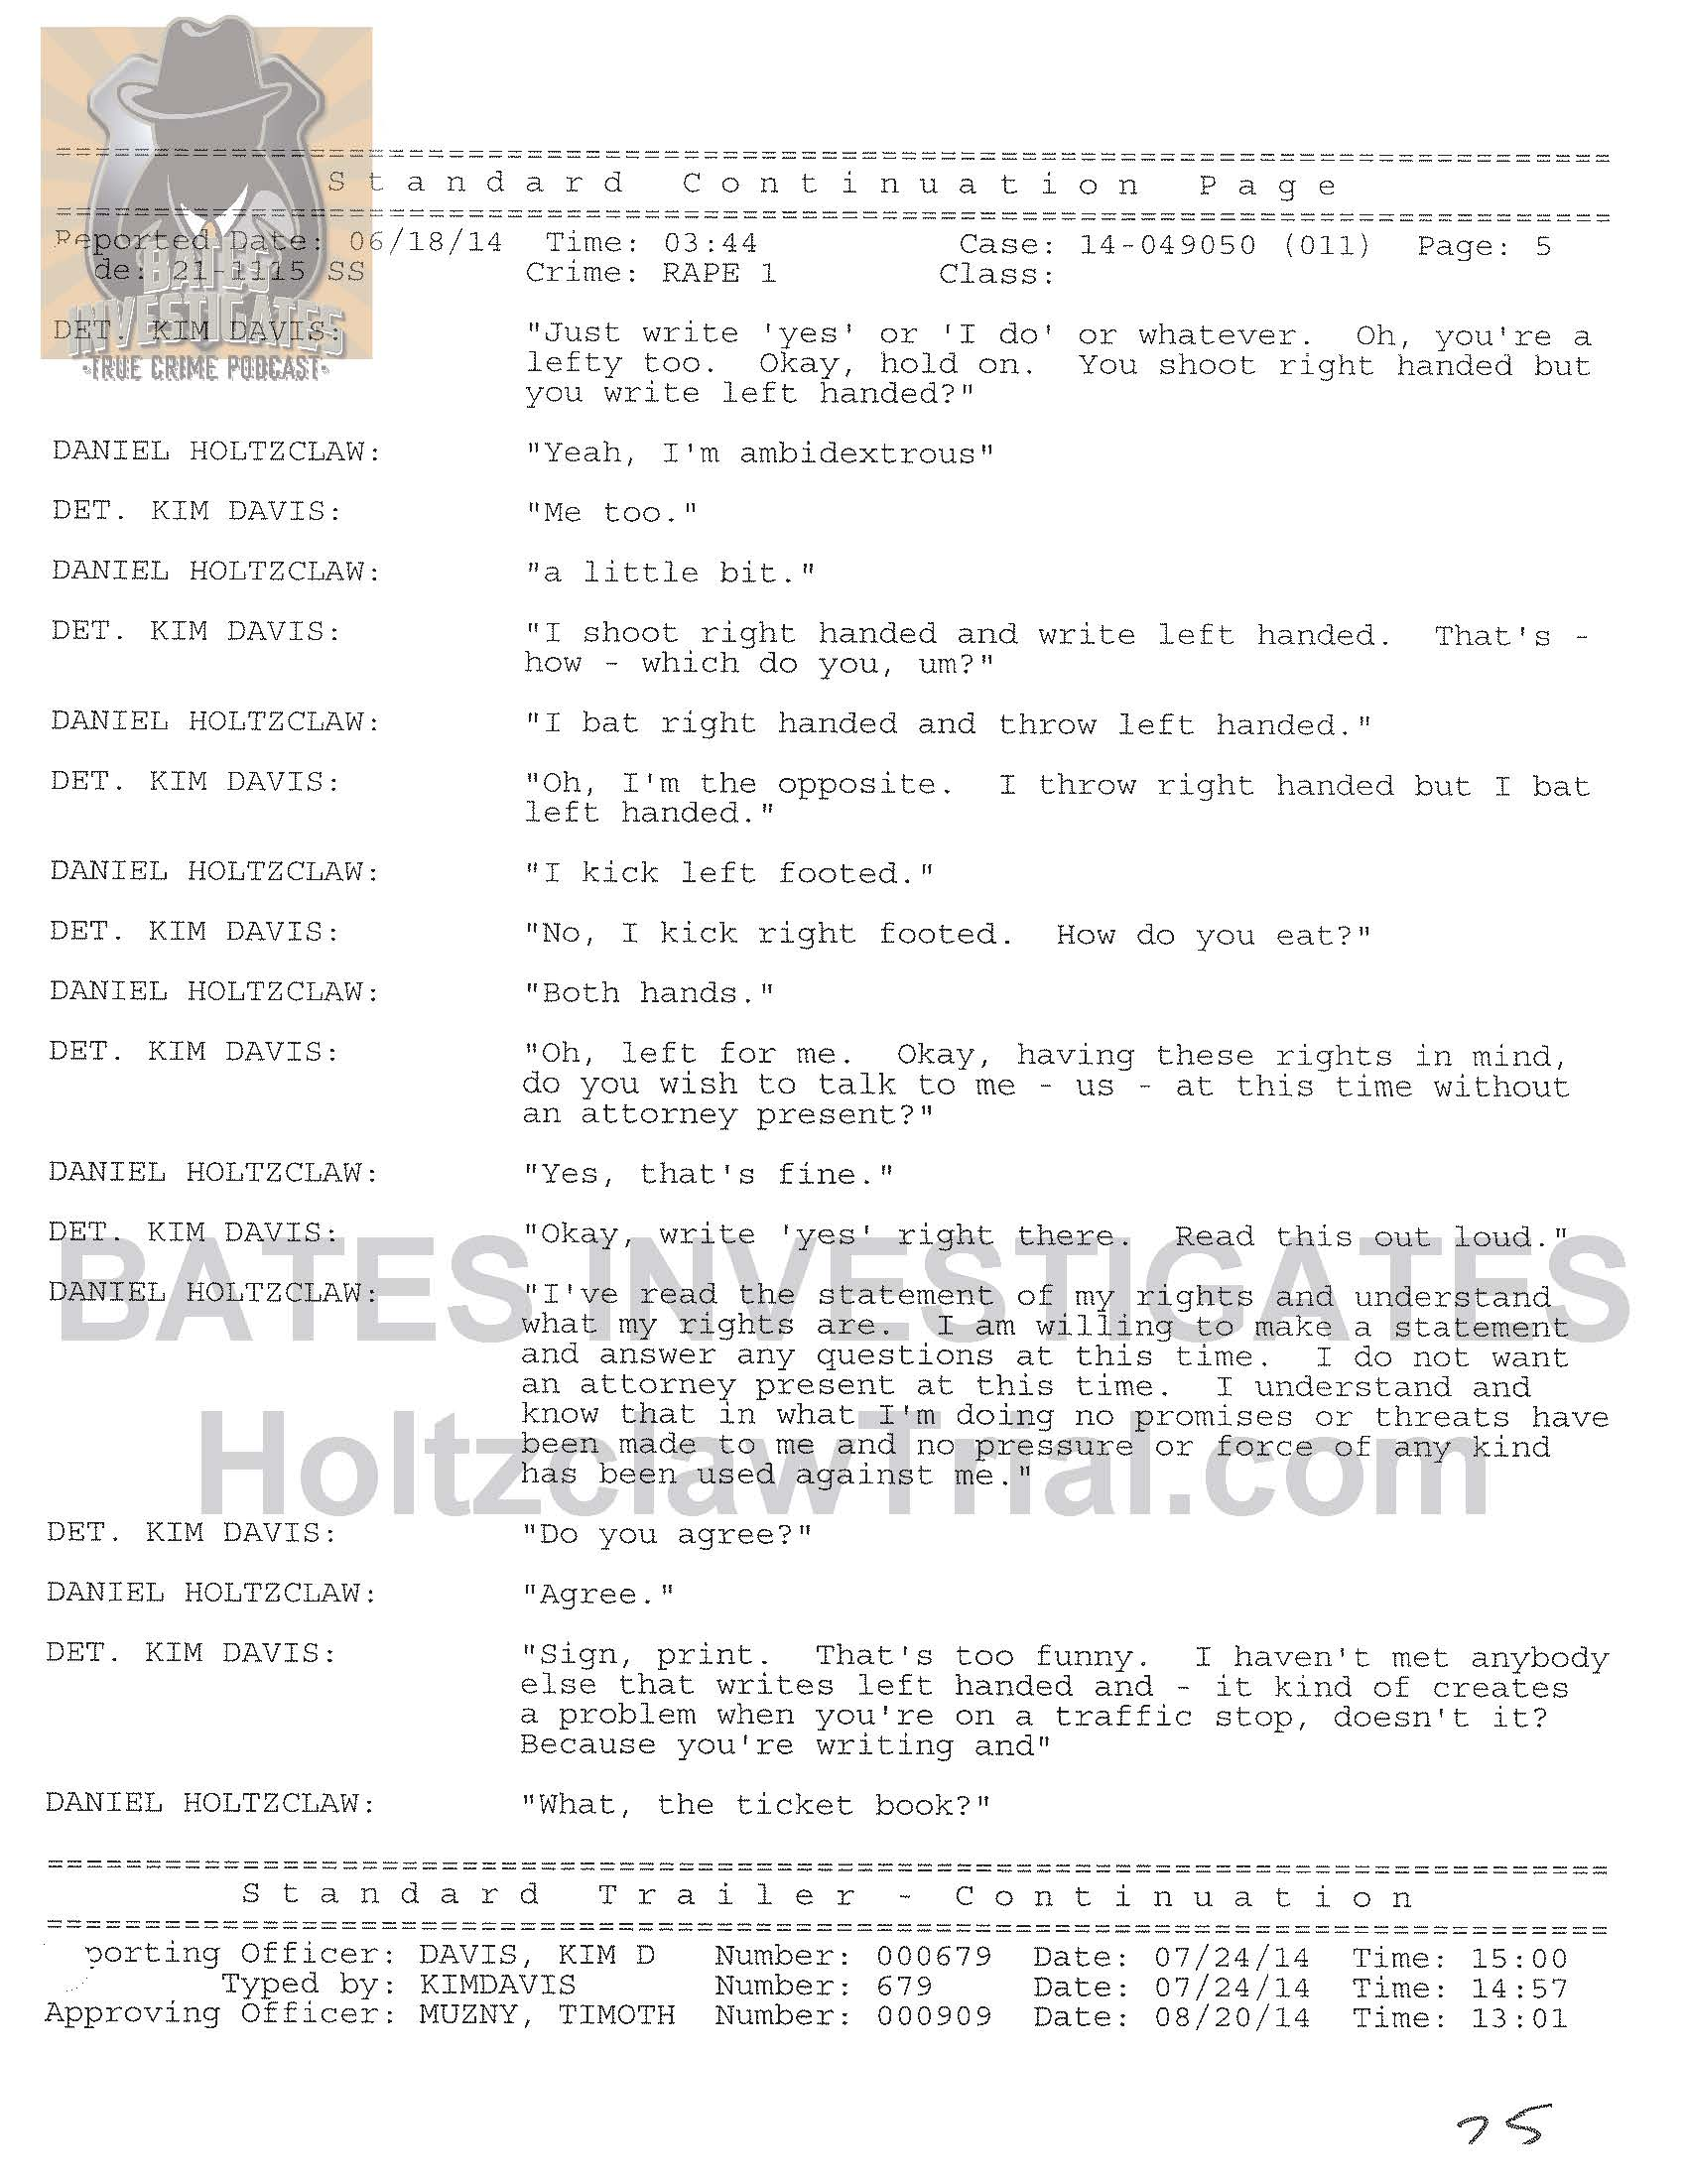 Holtzclaw Interrogation Transcript - Ep02 Redacted_Page_05.jpg